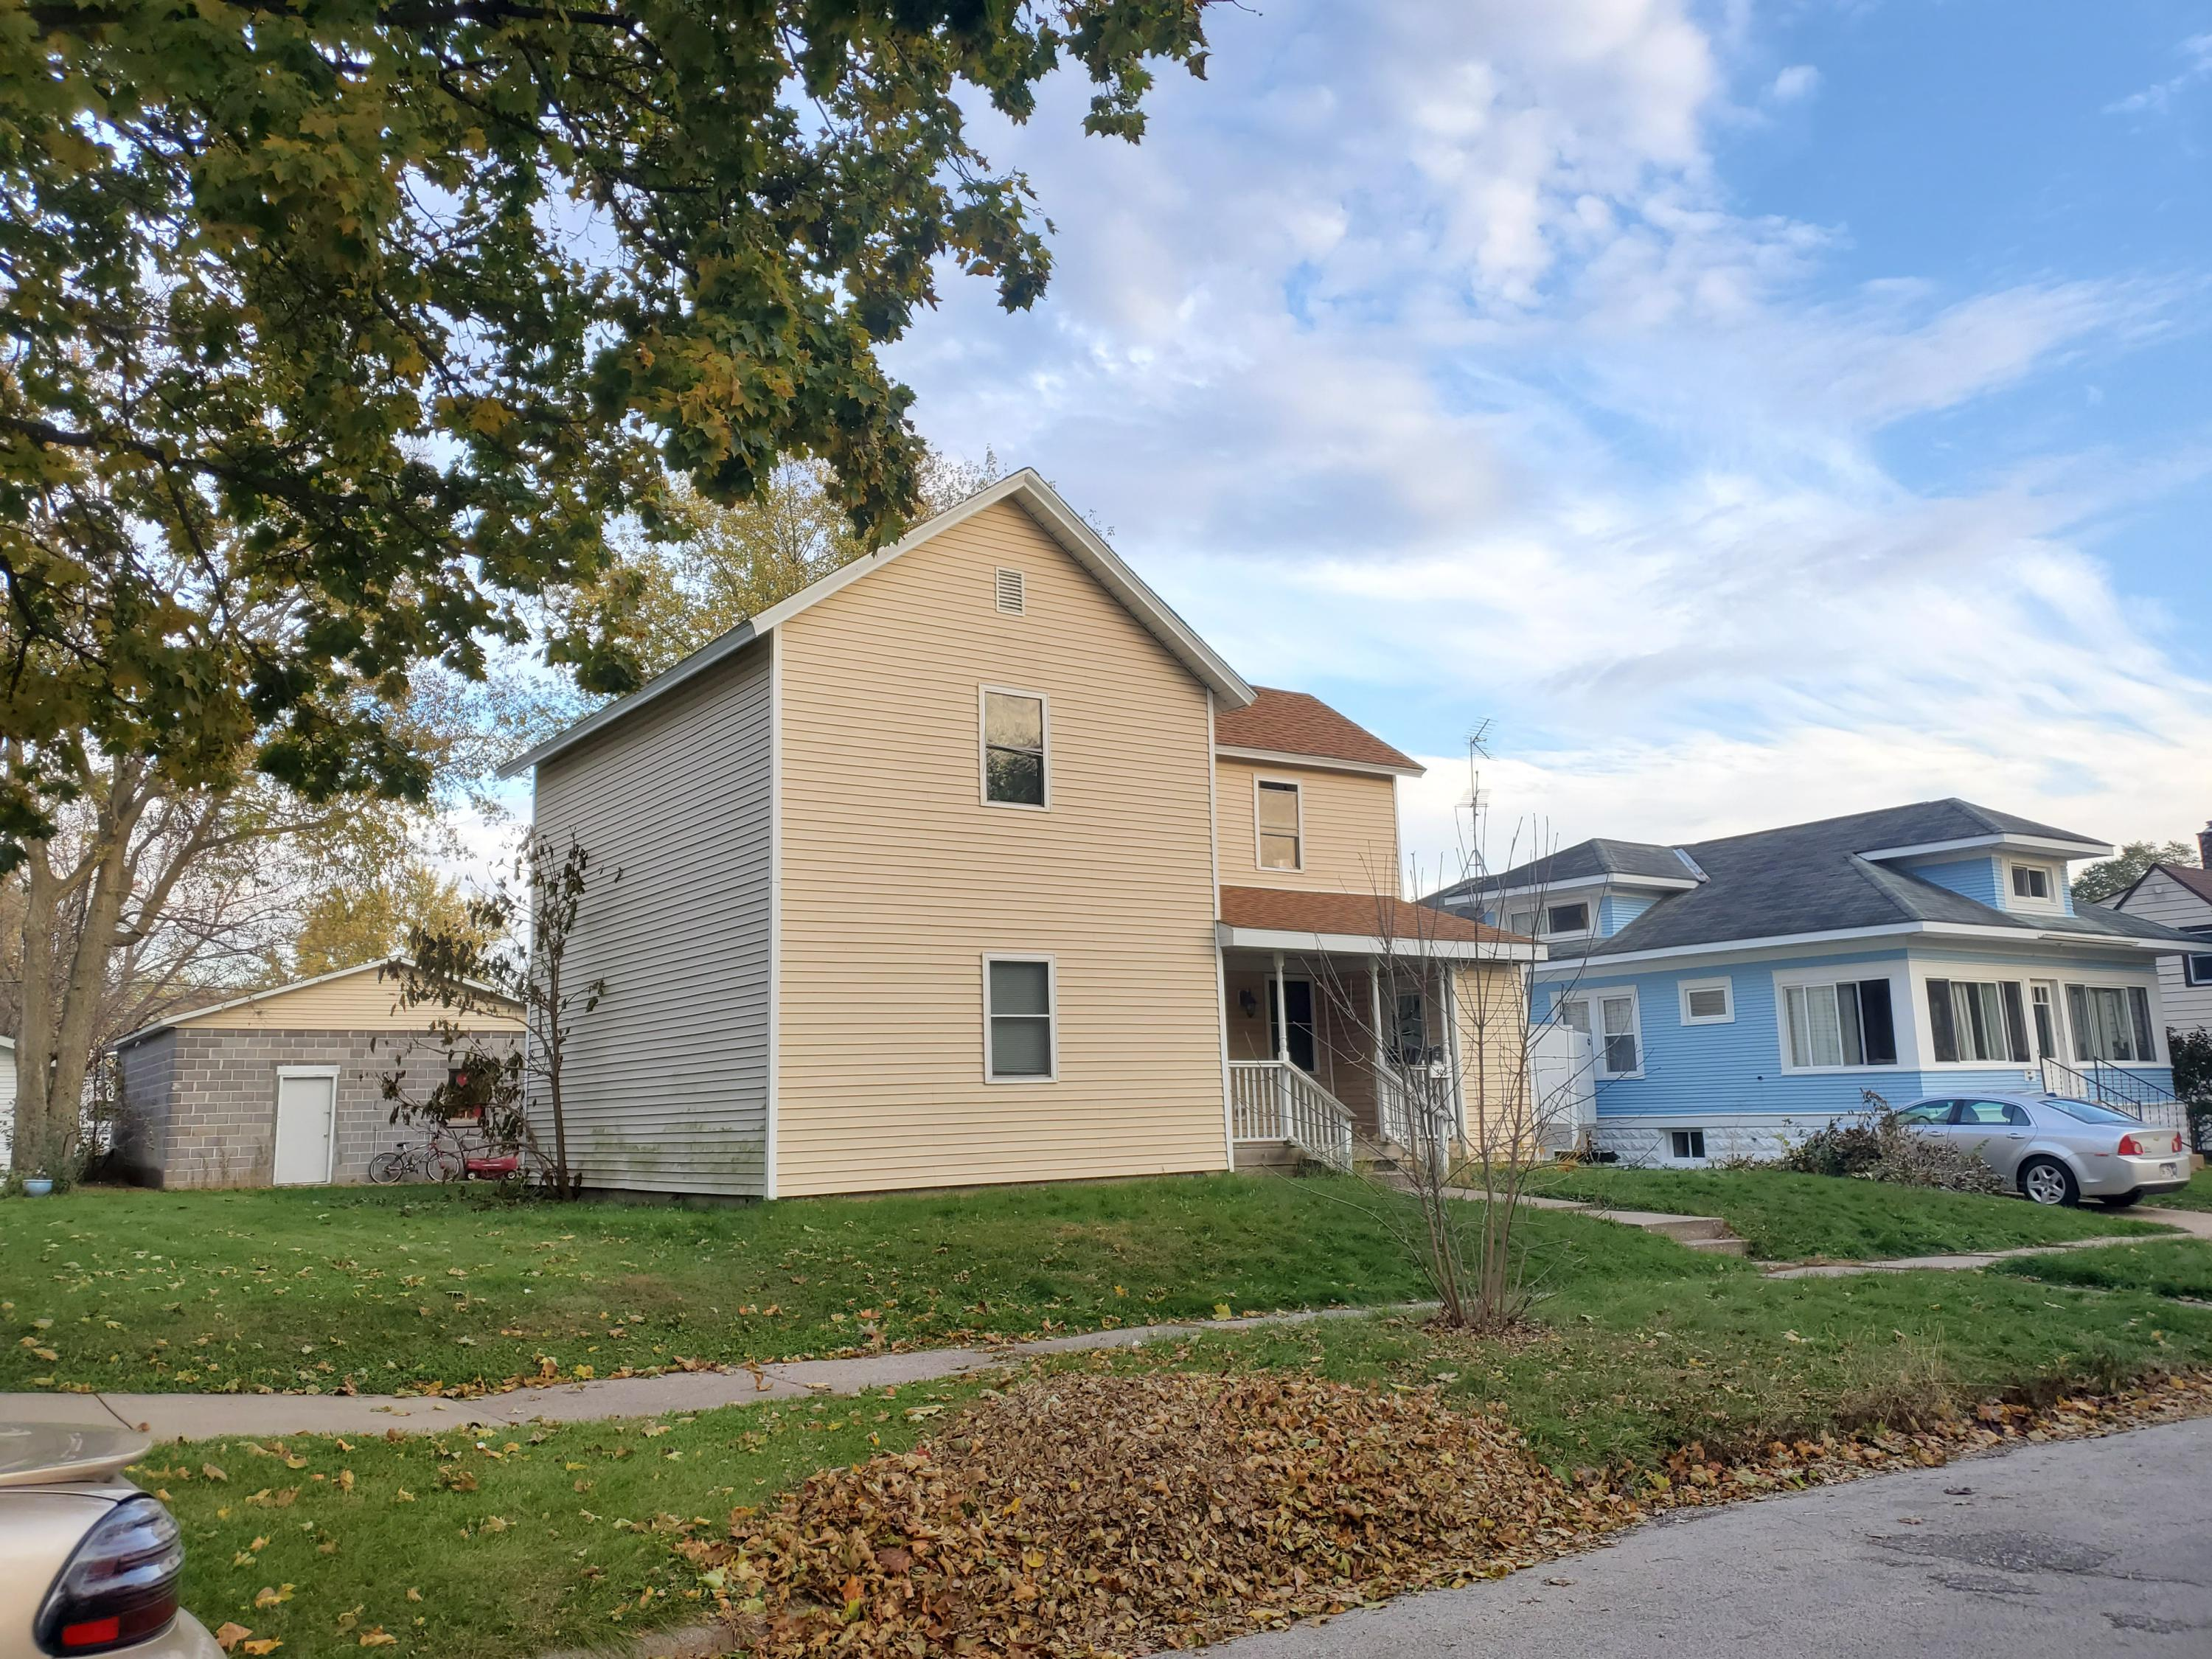 Photo of 309A S K St #309B, Sparta, WI 54656